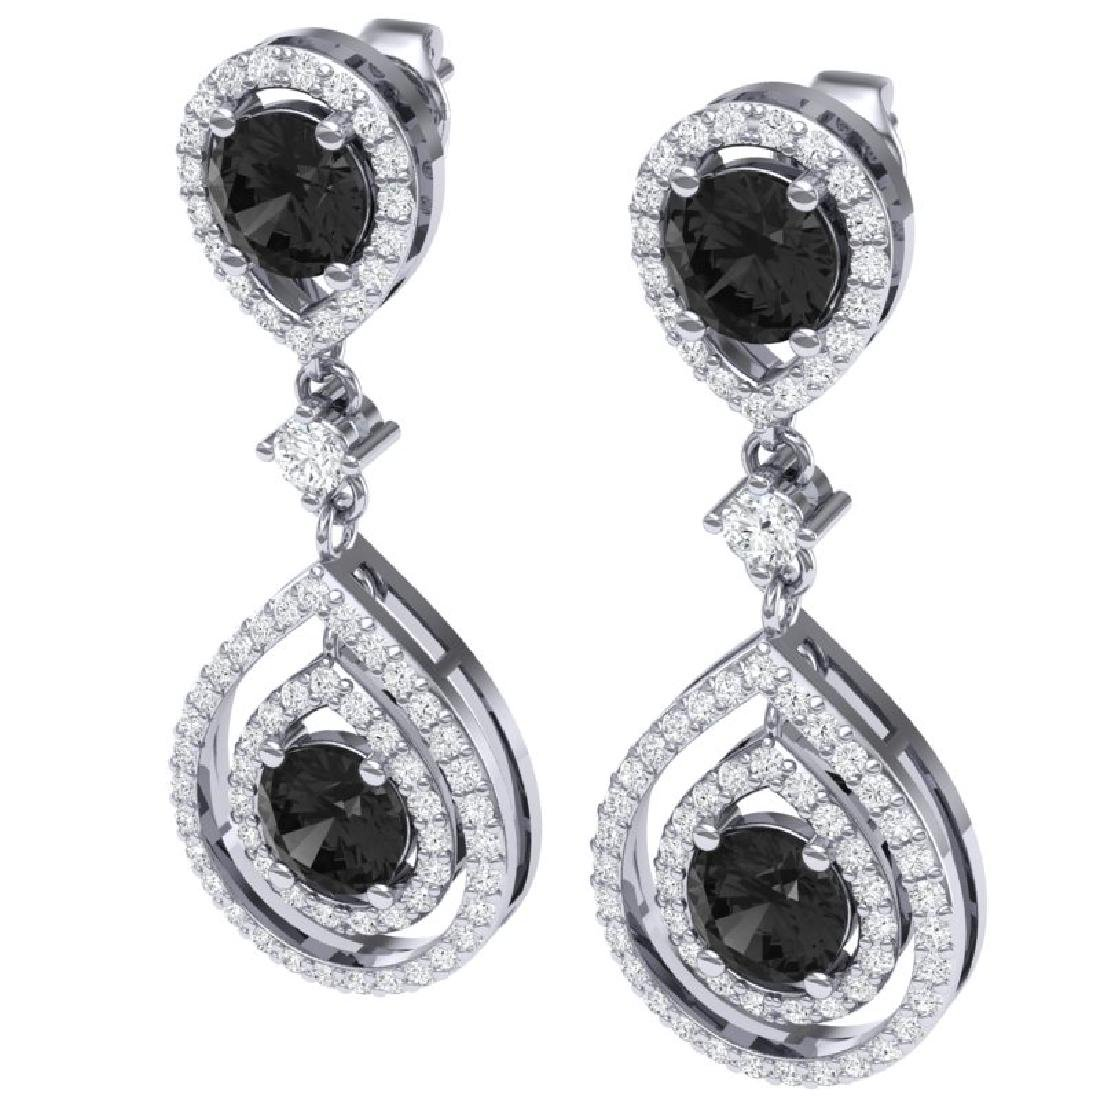 3.62 CTW Certified Black VS Diamond Earrings 18K White - 2